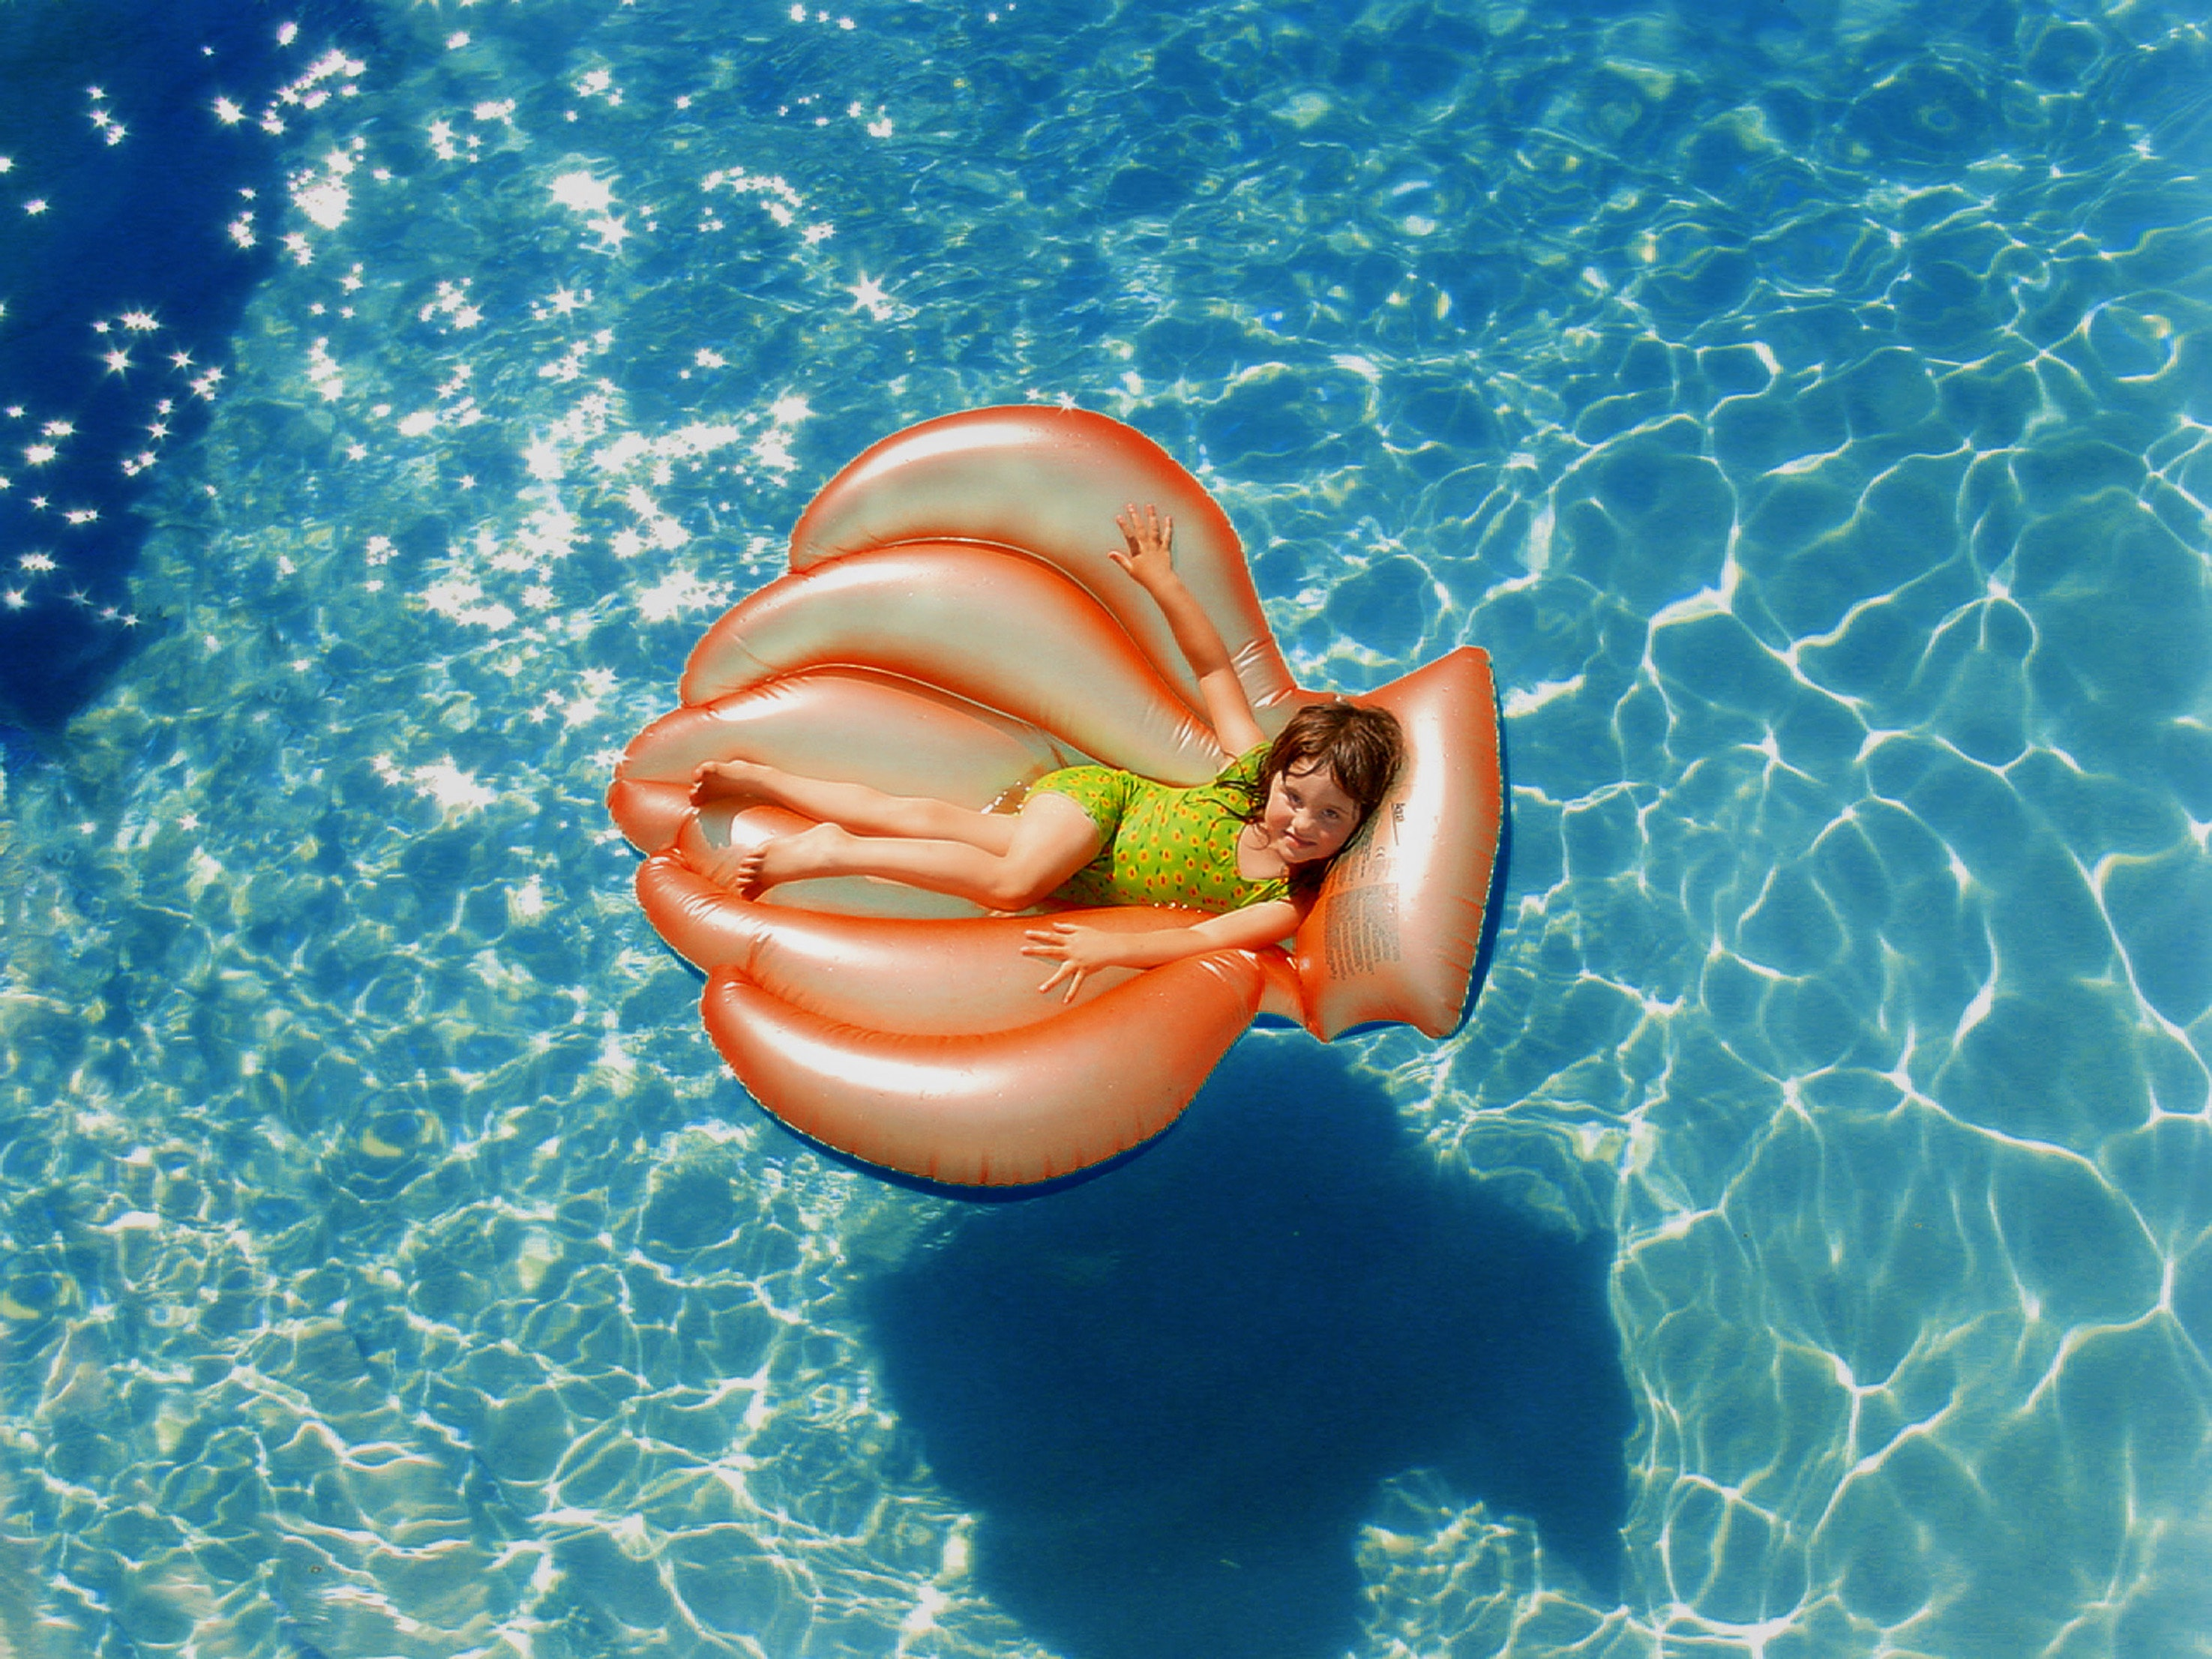 Girl Wearing Green Wet Suit Riding Inflatable Orange Life Buoy on Top of Body of Water, Beach, Sun, Vacation, Underwater, HQ Photo